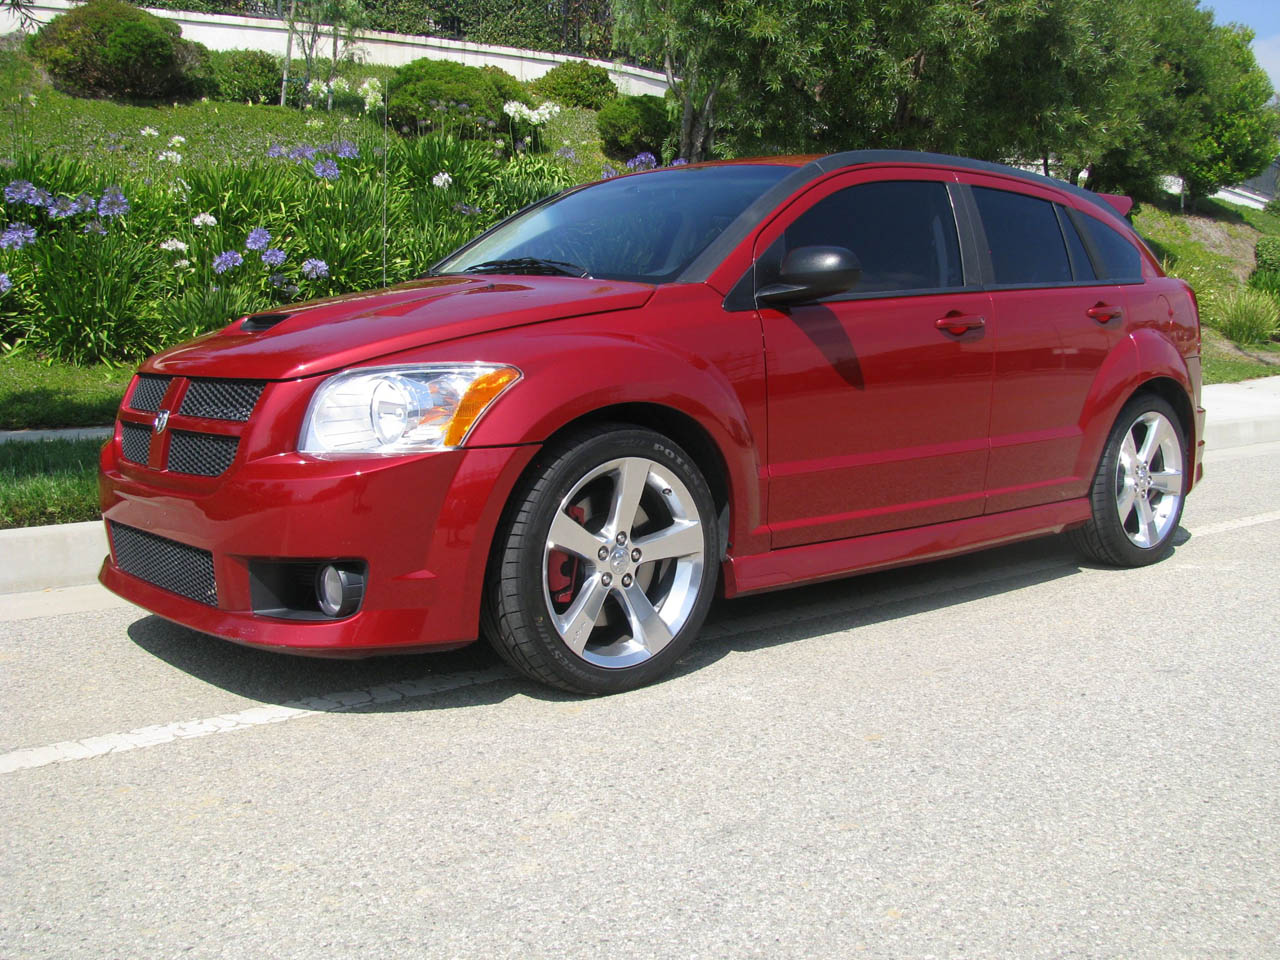 2008 dodge caliber srt 4 ms1k 1 4 mile drag racing. Black Bedroom Furniture Sets. Home Design Ideas